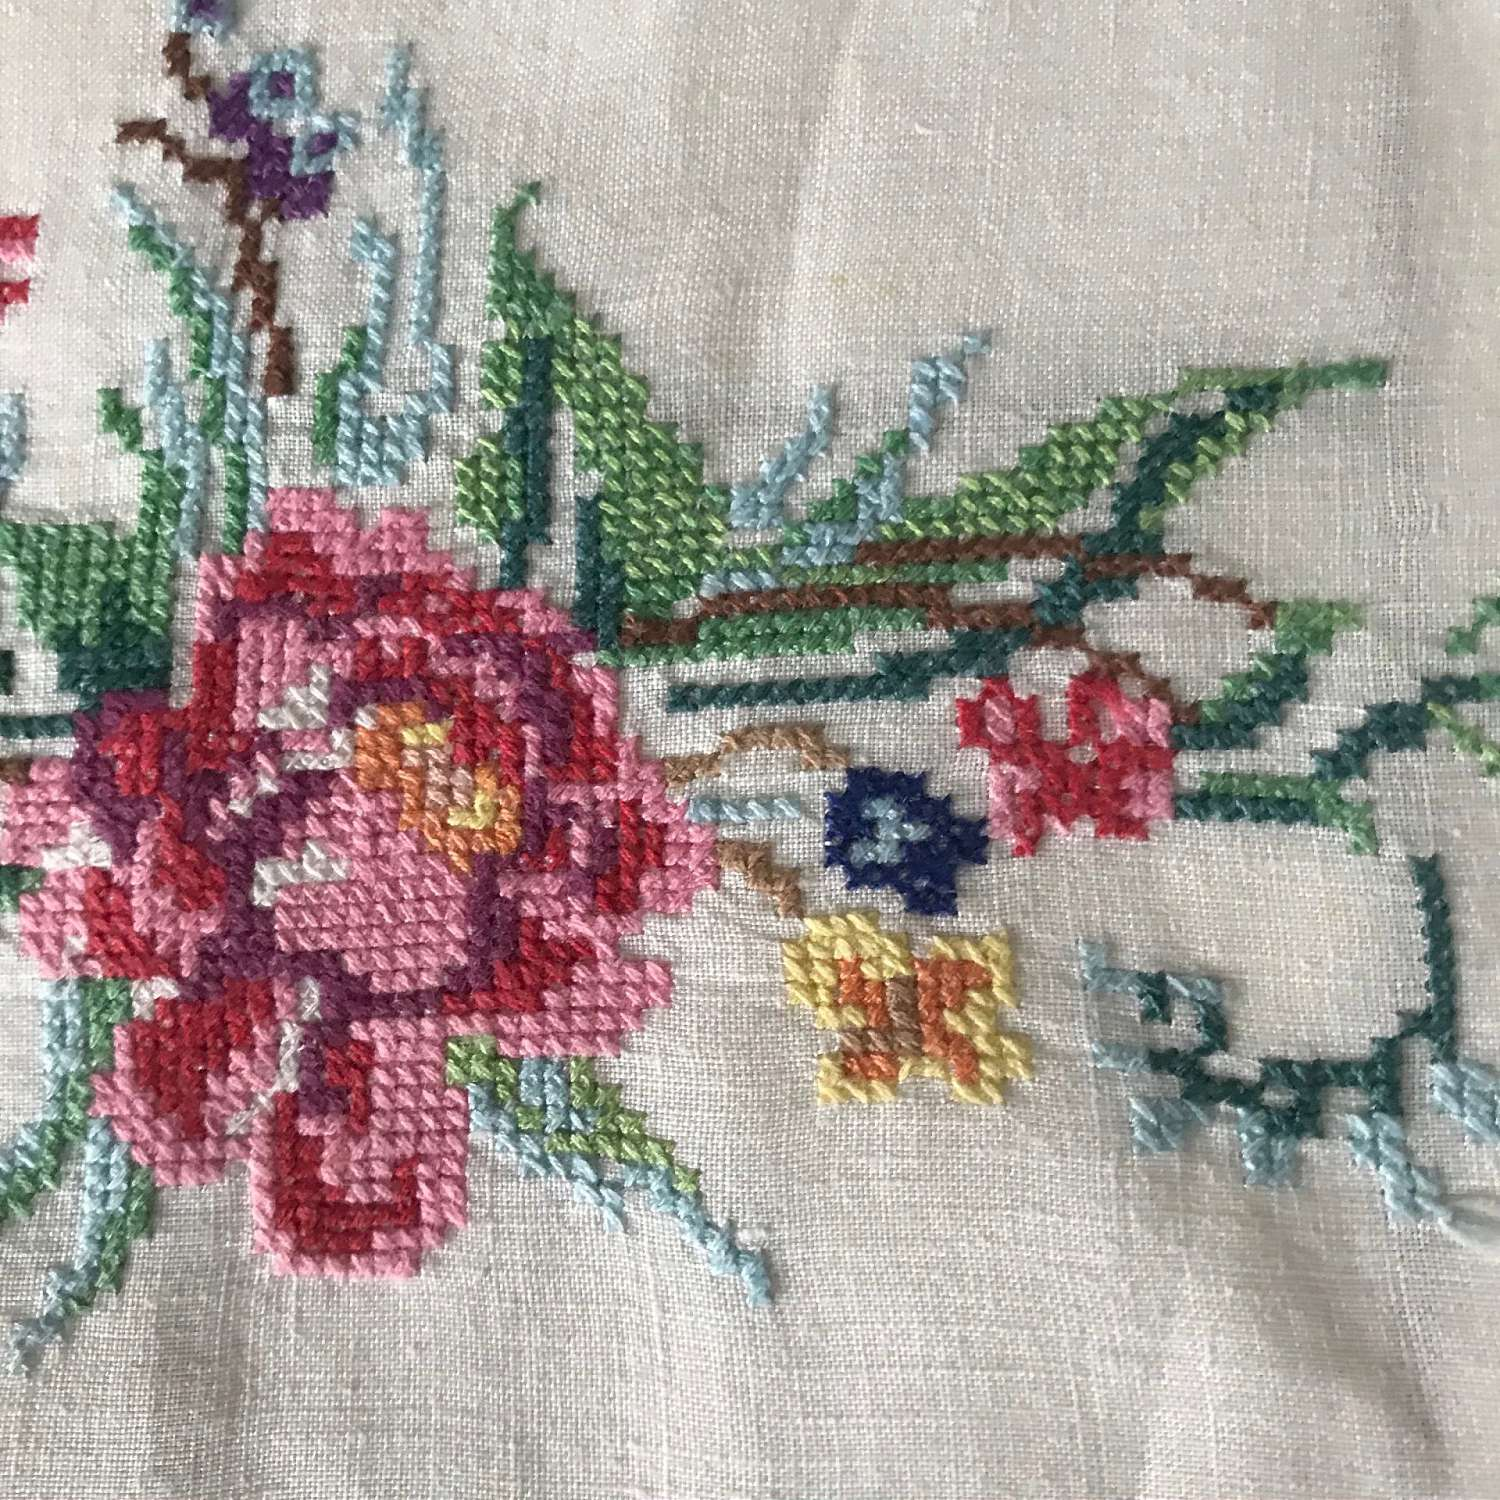 Vintage Embroidered TULIPS guest towel Cross stitch tea towel Retro kitchen linen Machine embroidery Monogram towel Housewarming For her